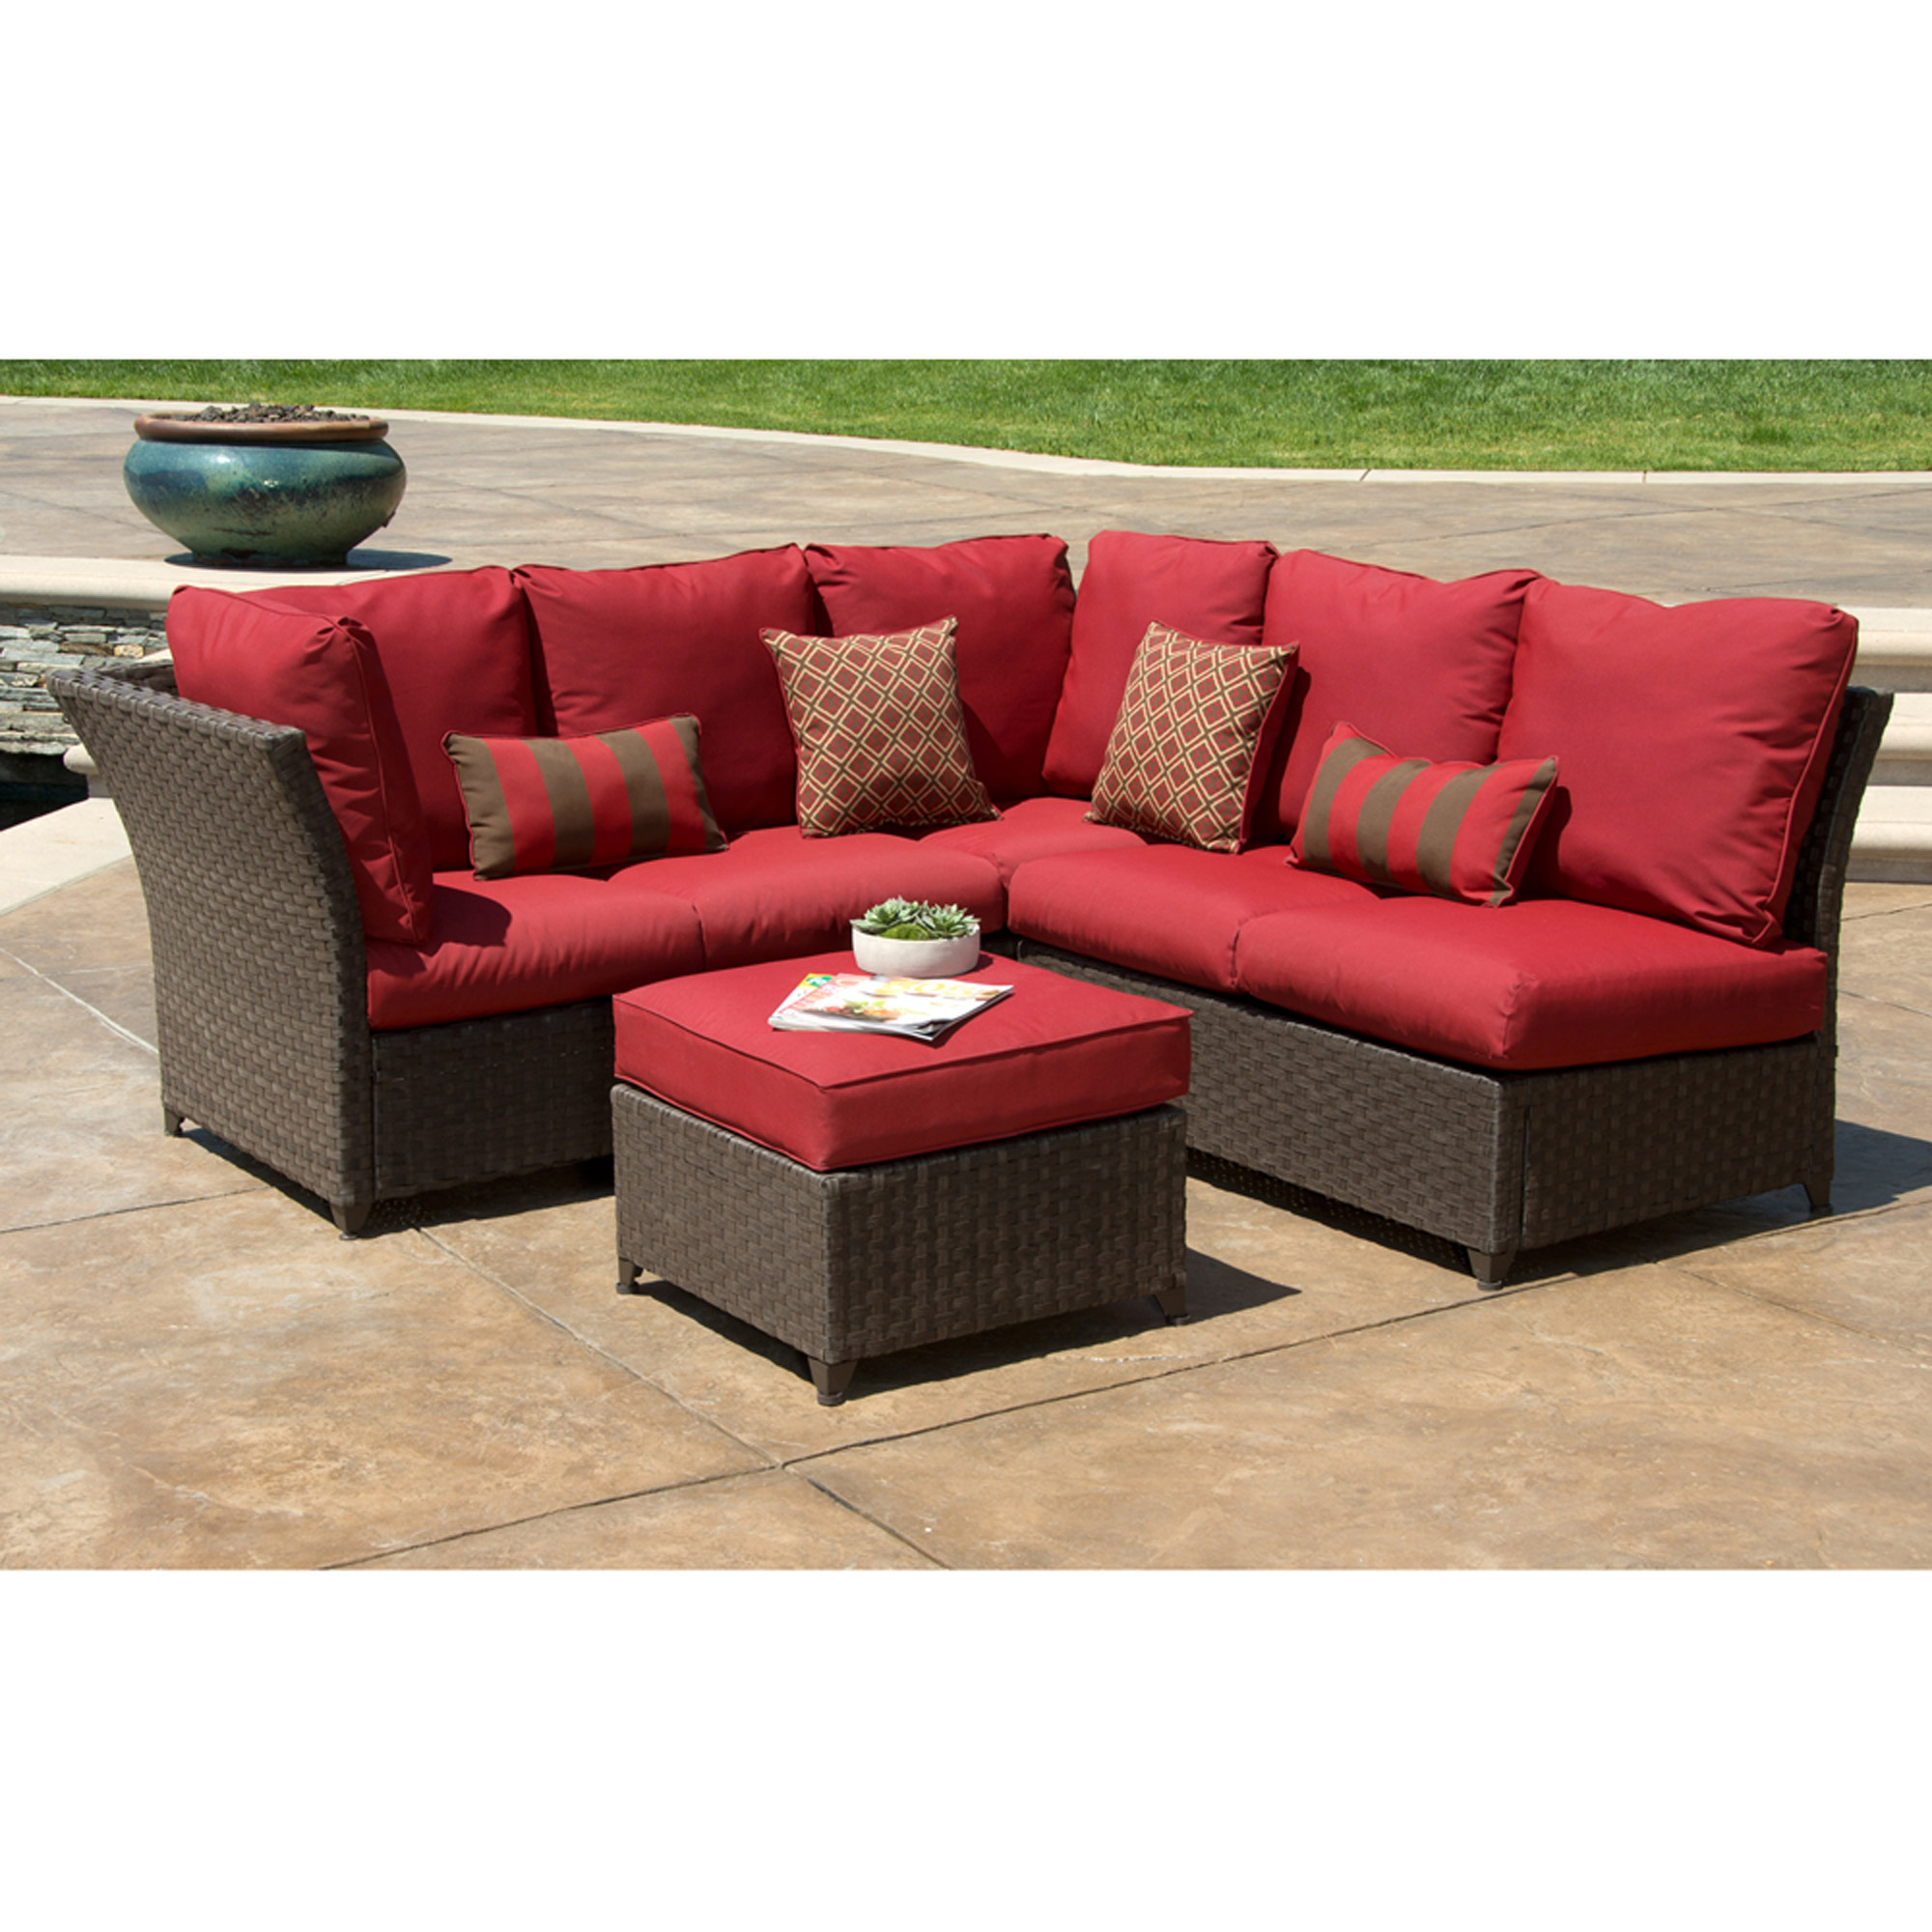 better homes and gardens rushreed 3piece outdoor sectional sofa set red seats 5 walmartcom